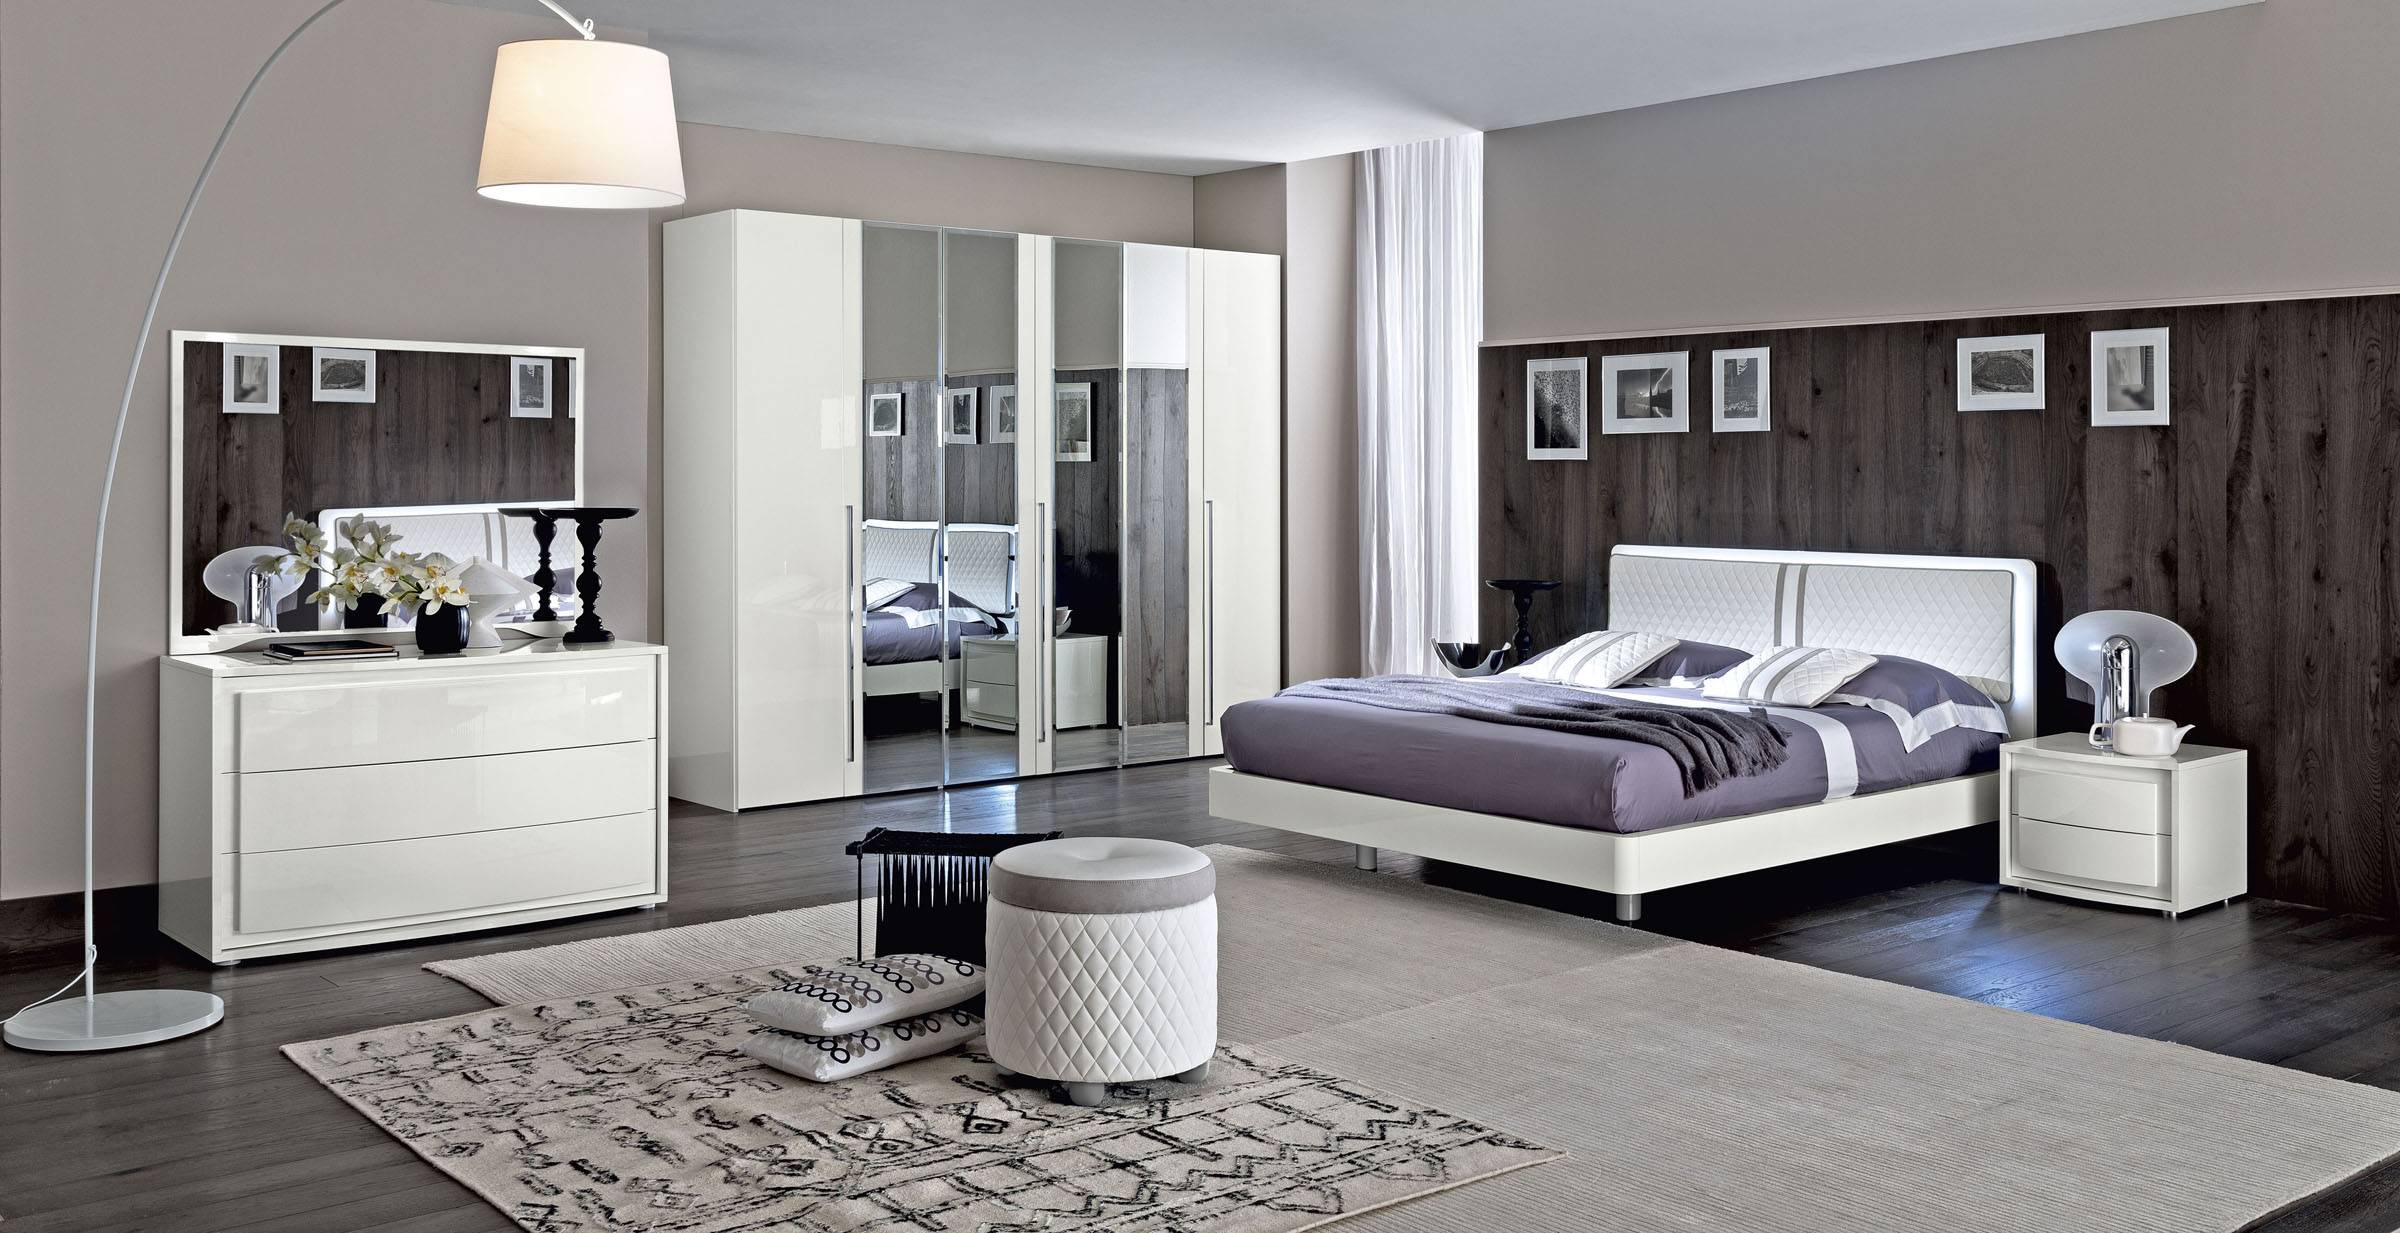 made in italy wood modern contemporary master beds tempe arizona esf camelgroup dama bianca. Black Bedroom Furniture Sets. Home Design Ideas